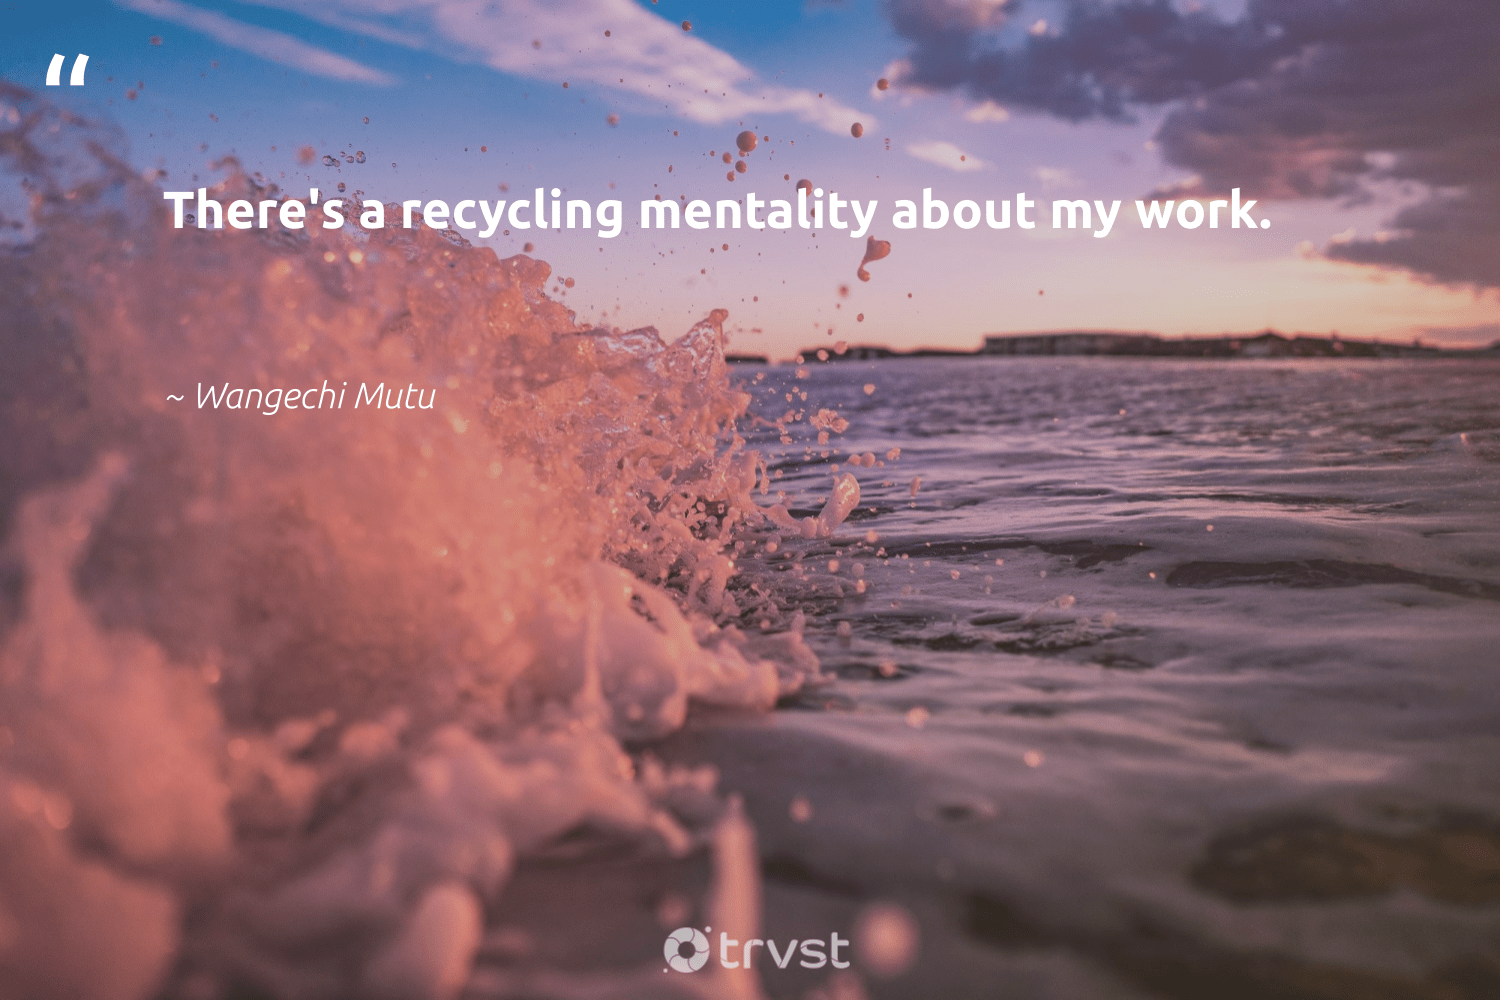 """""""There's a recycling mentality about my work.""""  - Wangechi Mutu #trvst #quotes #recycling #recycled #dosomething #wastefree #thinkgreen #refuse #ecofriendly #dotherightthing #planetearthfirst #refurbished"""